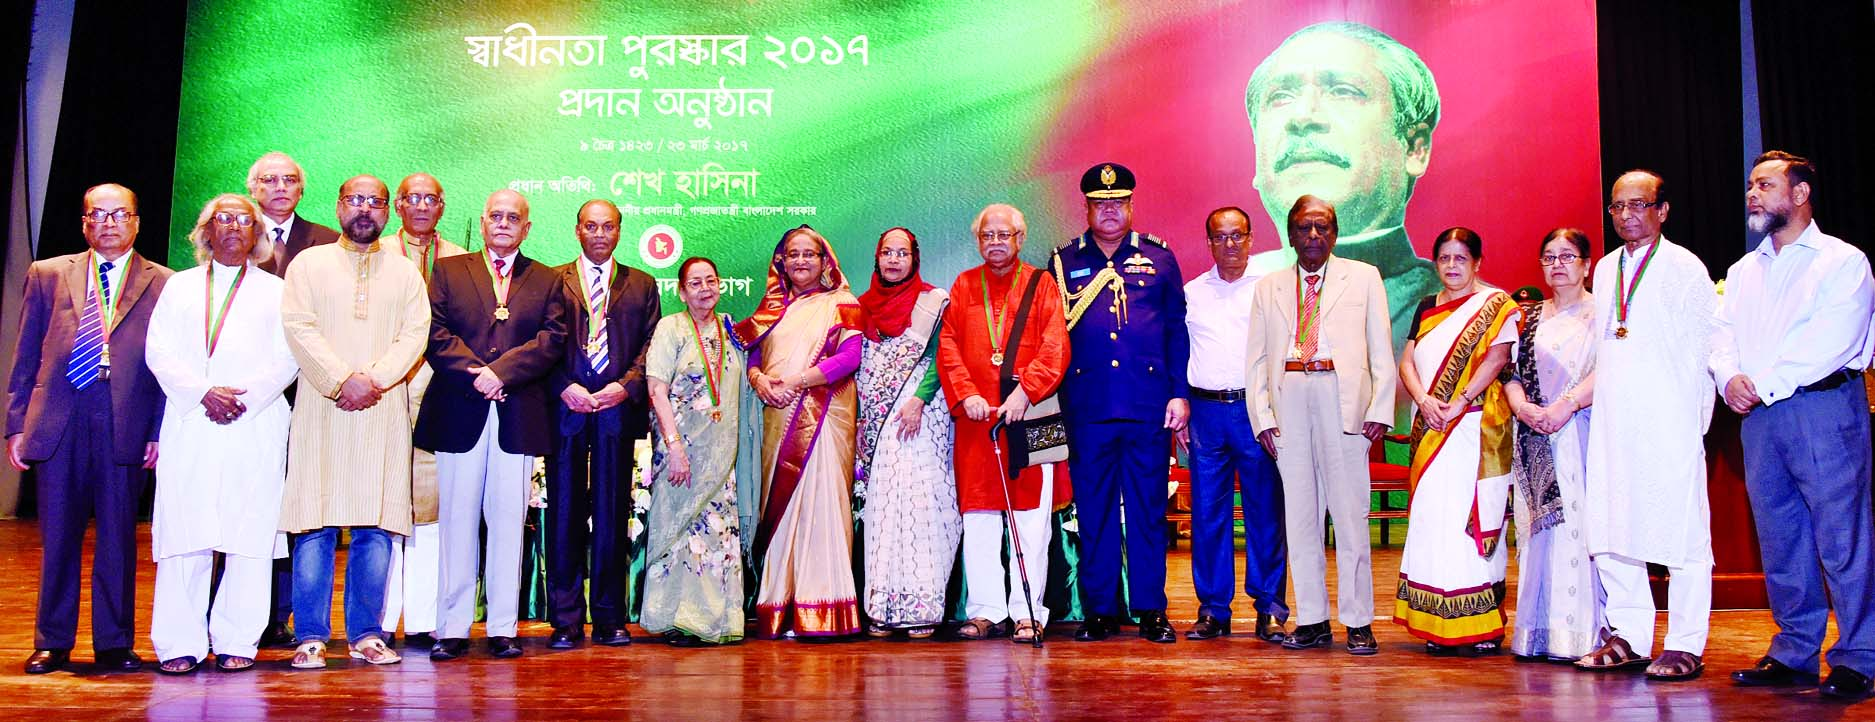 No conspiracy against BD to work: PM